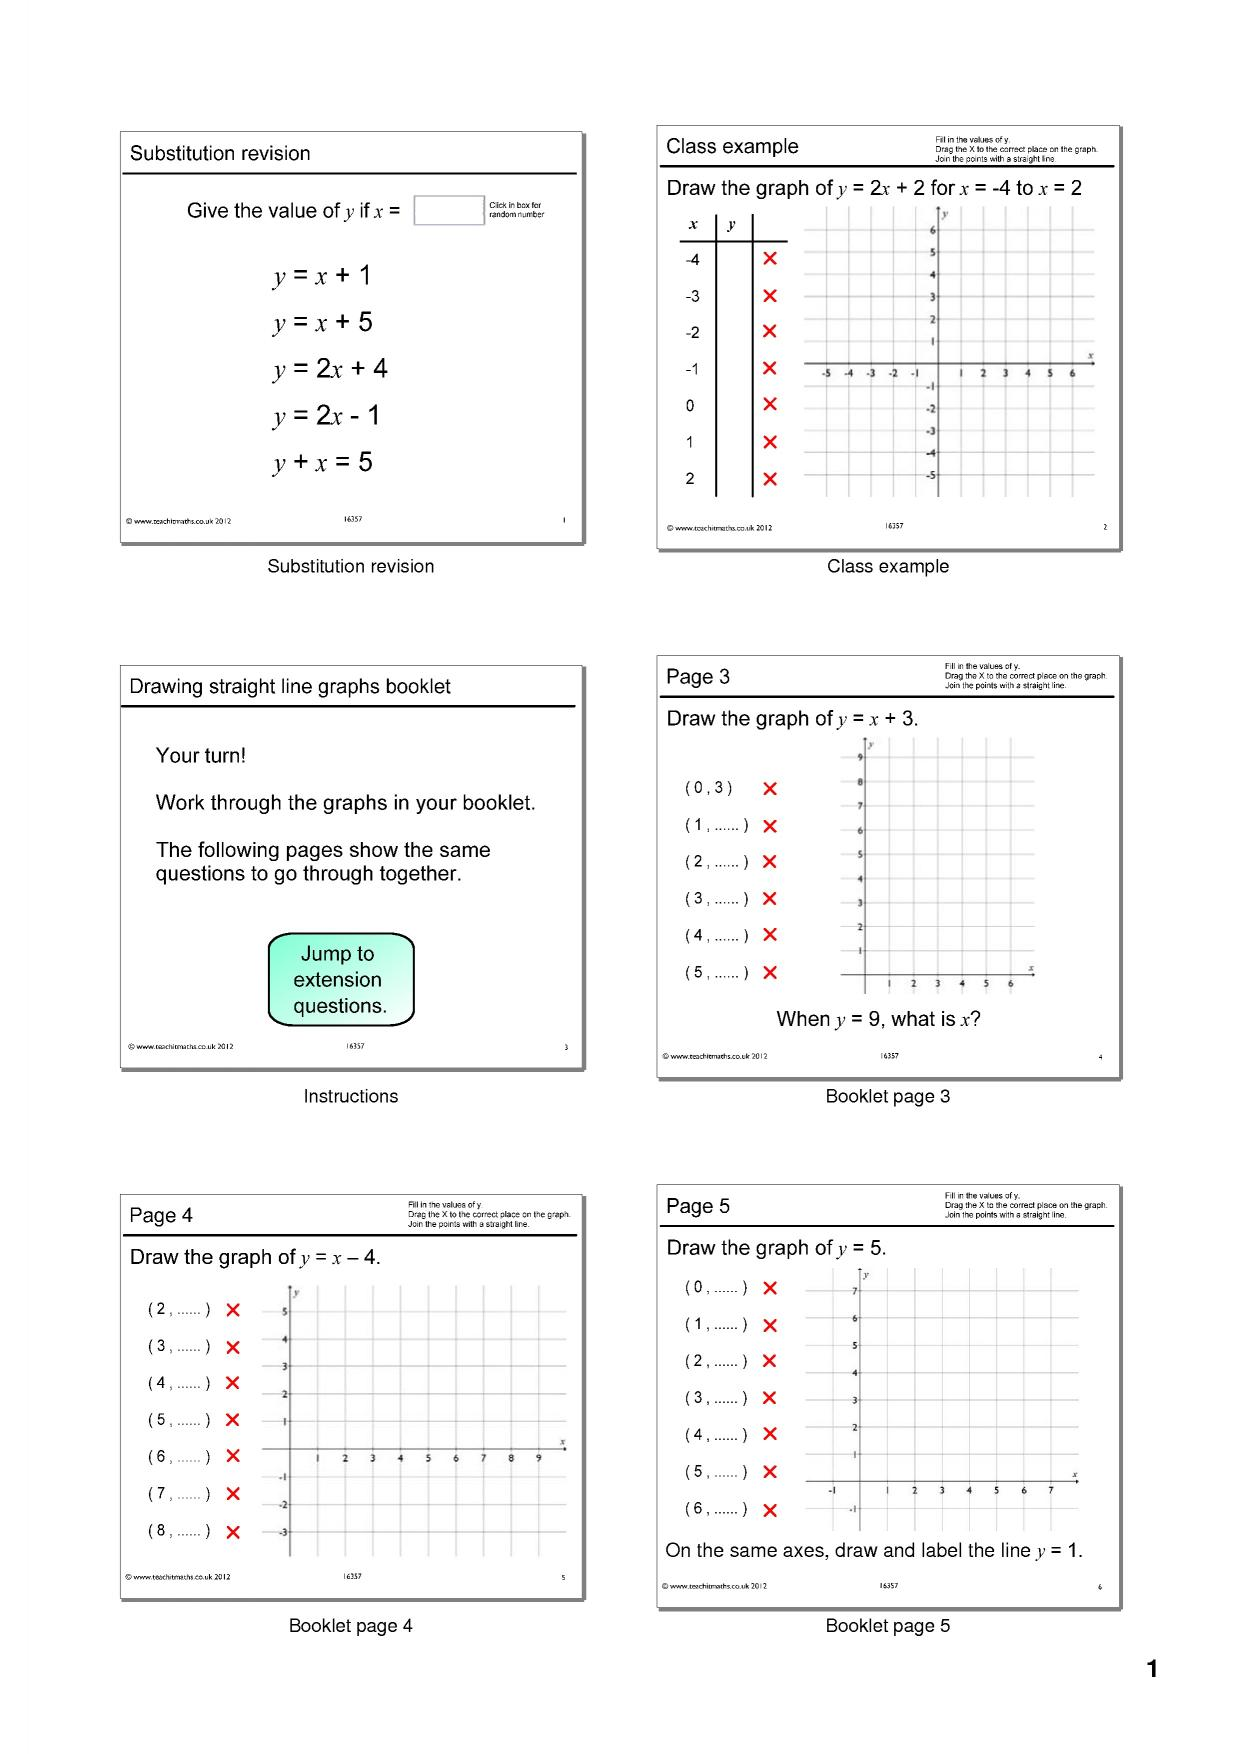 Drawing Straight Line Graphs Booklet